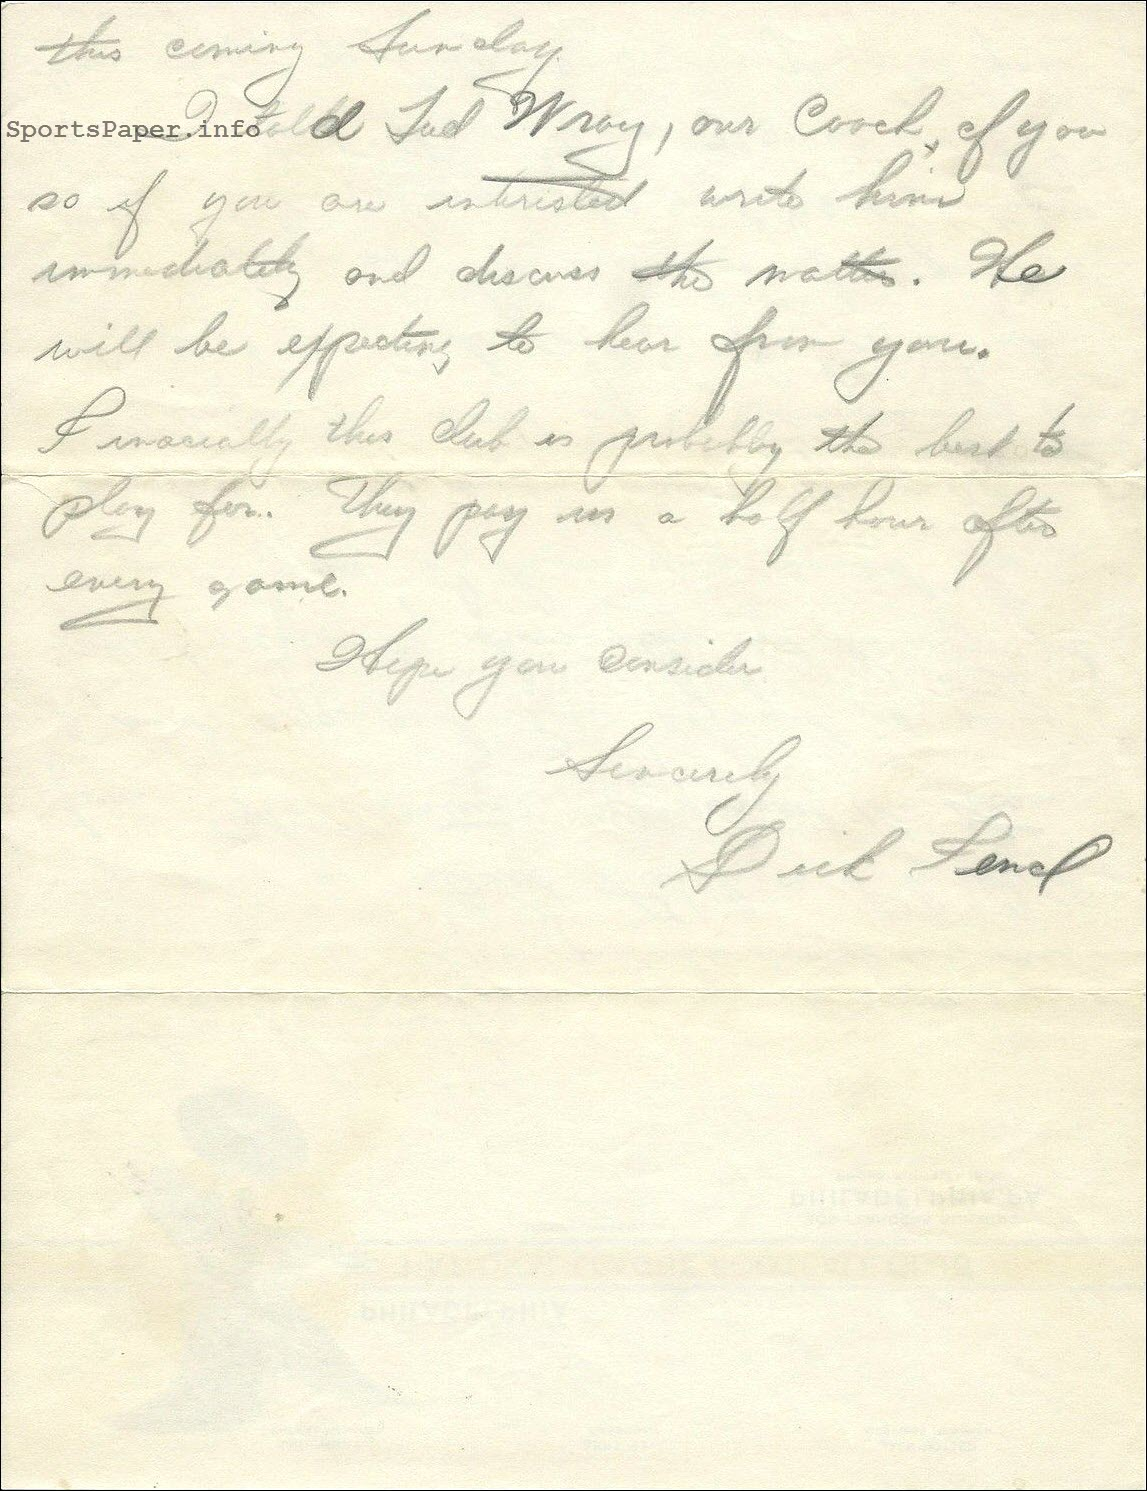 1933 Philadelphia Eagles NFL Recruiting Letter